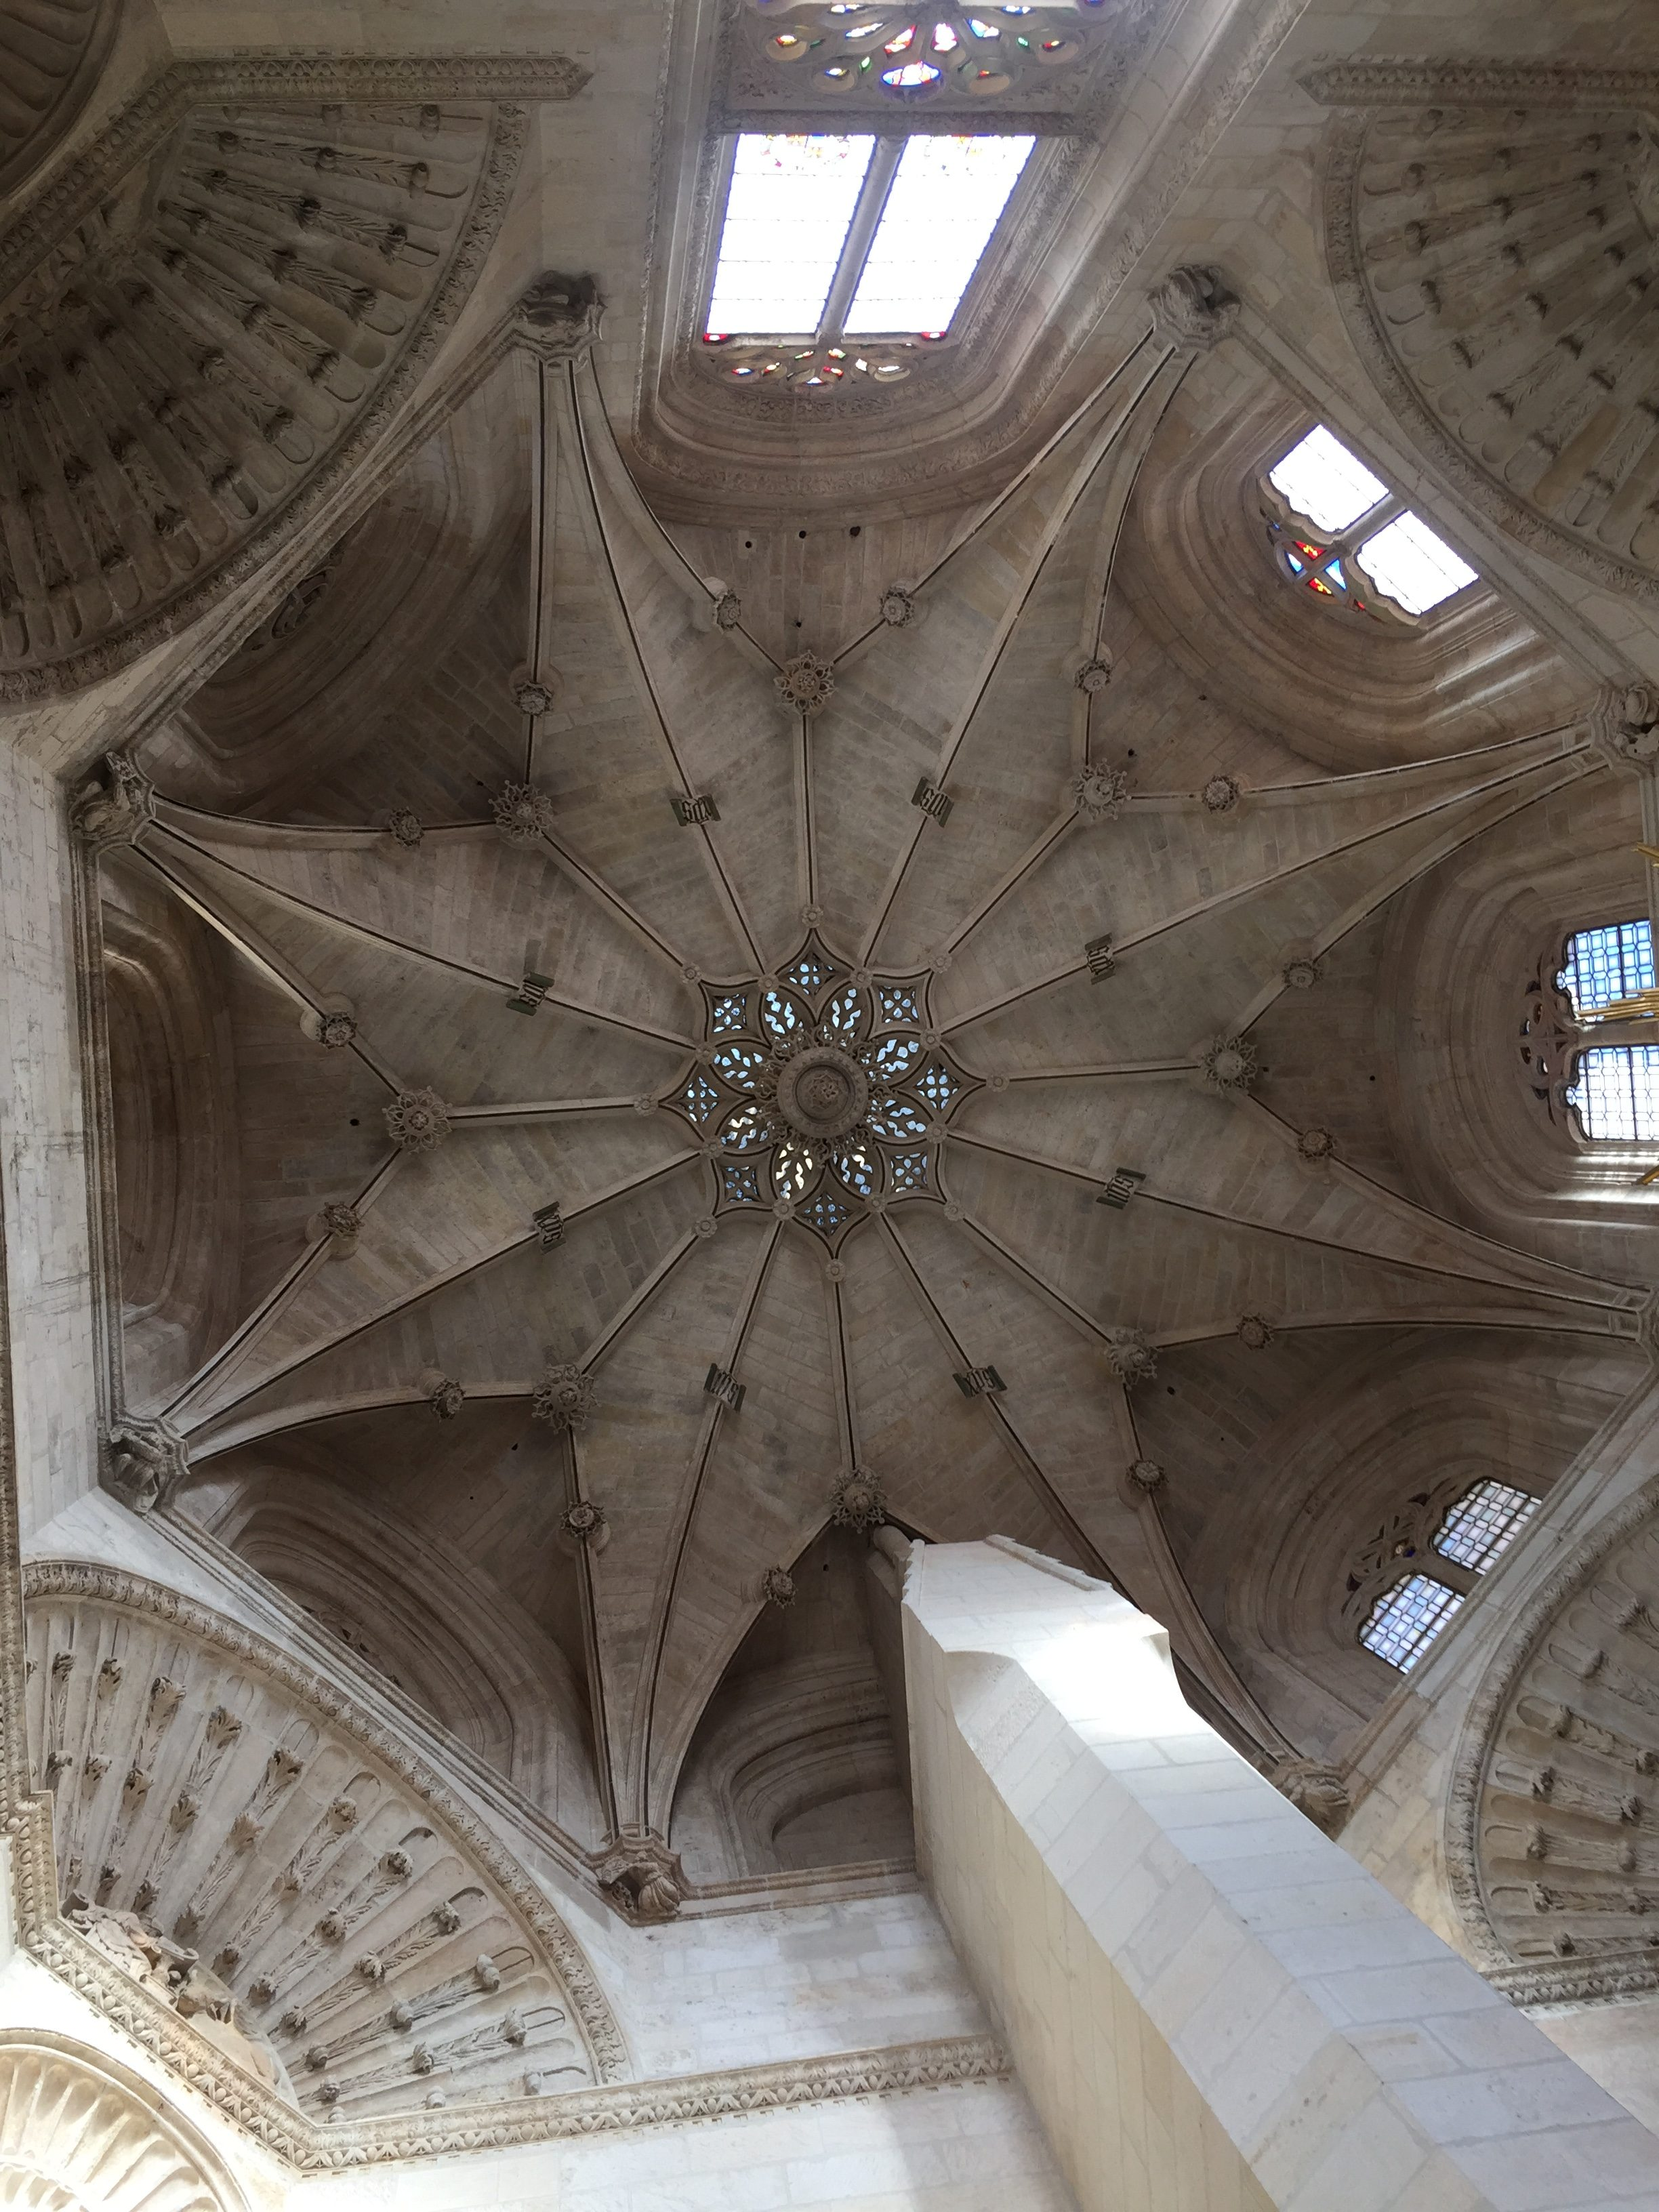 Inside the Cathedral - roof